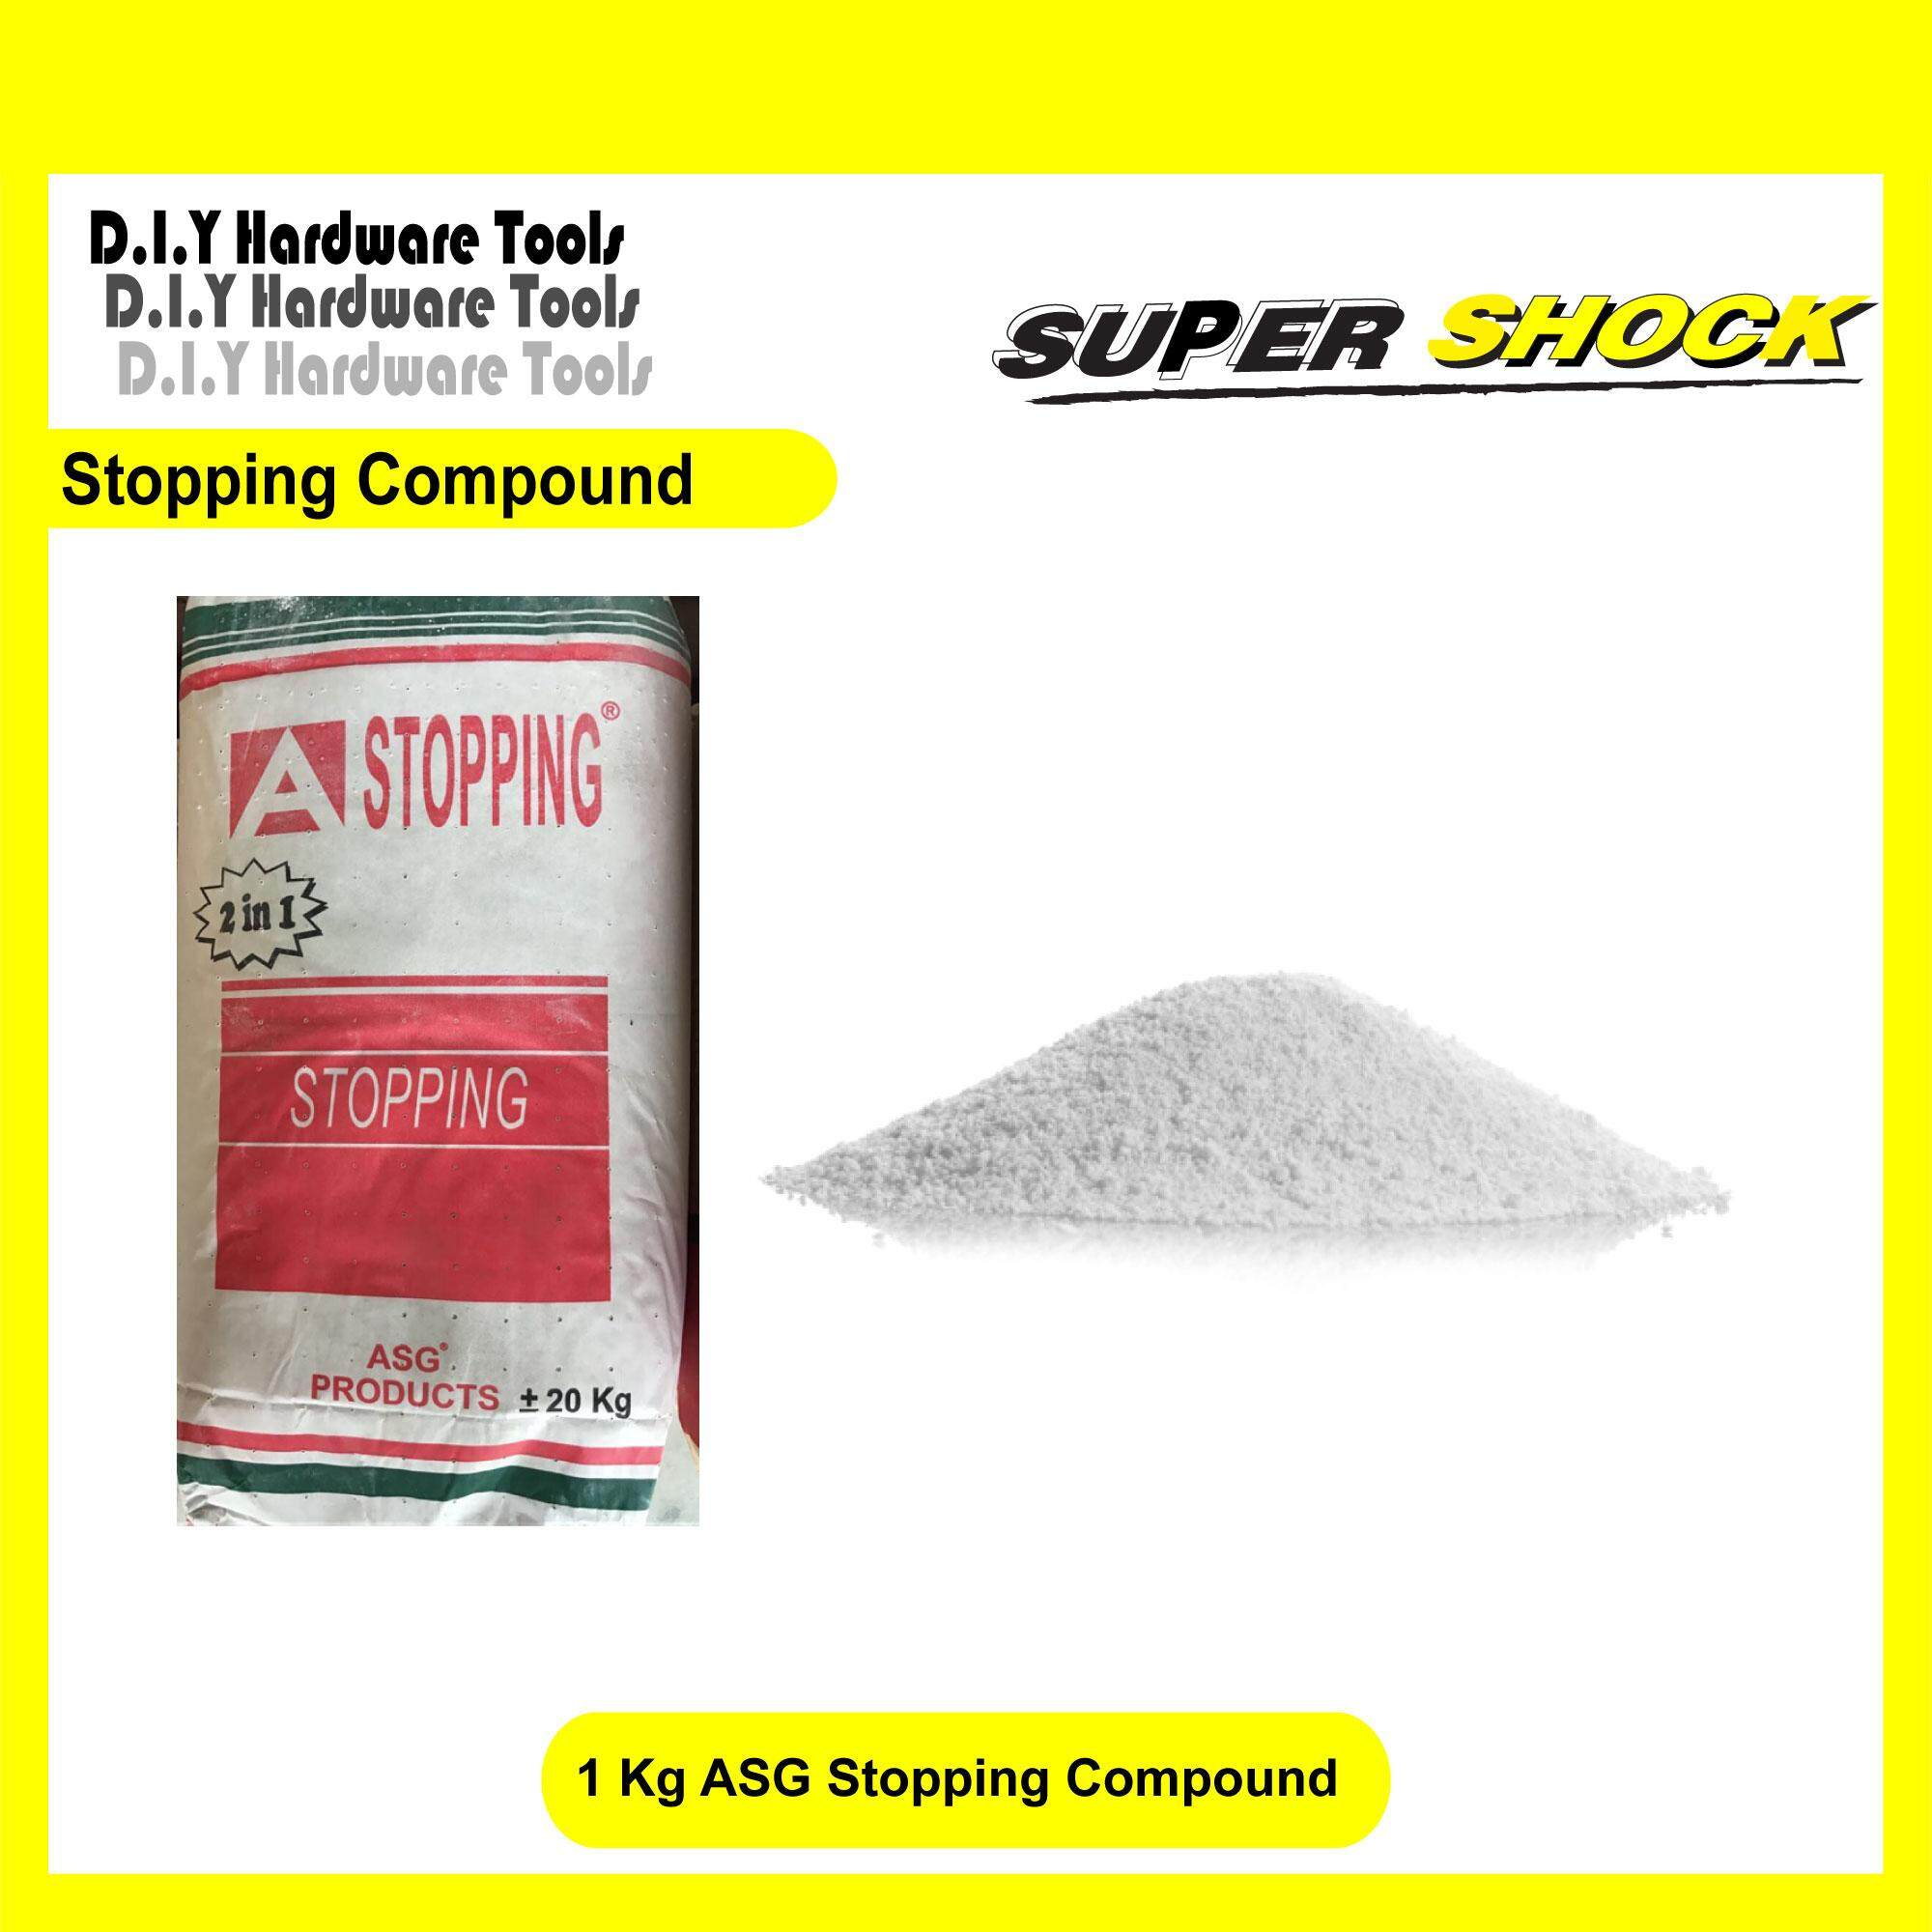 1 Kg Stopping Compound / Plaster Ceiling Compound